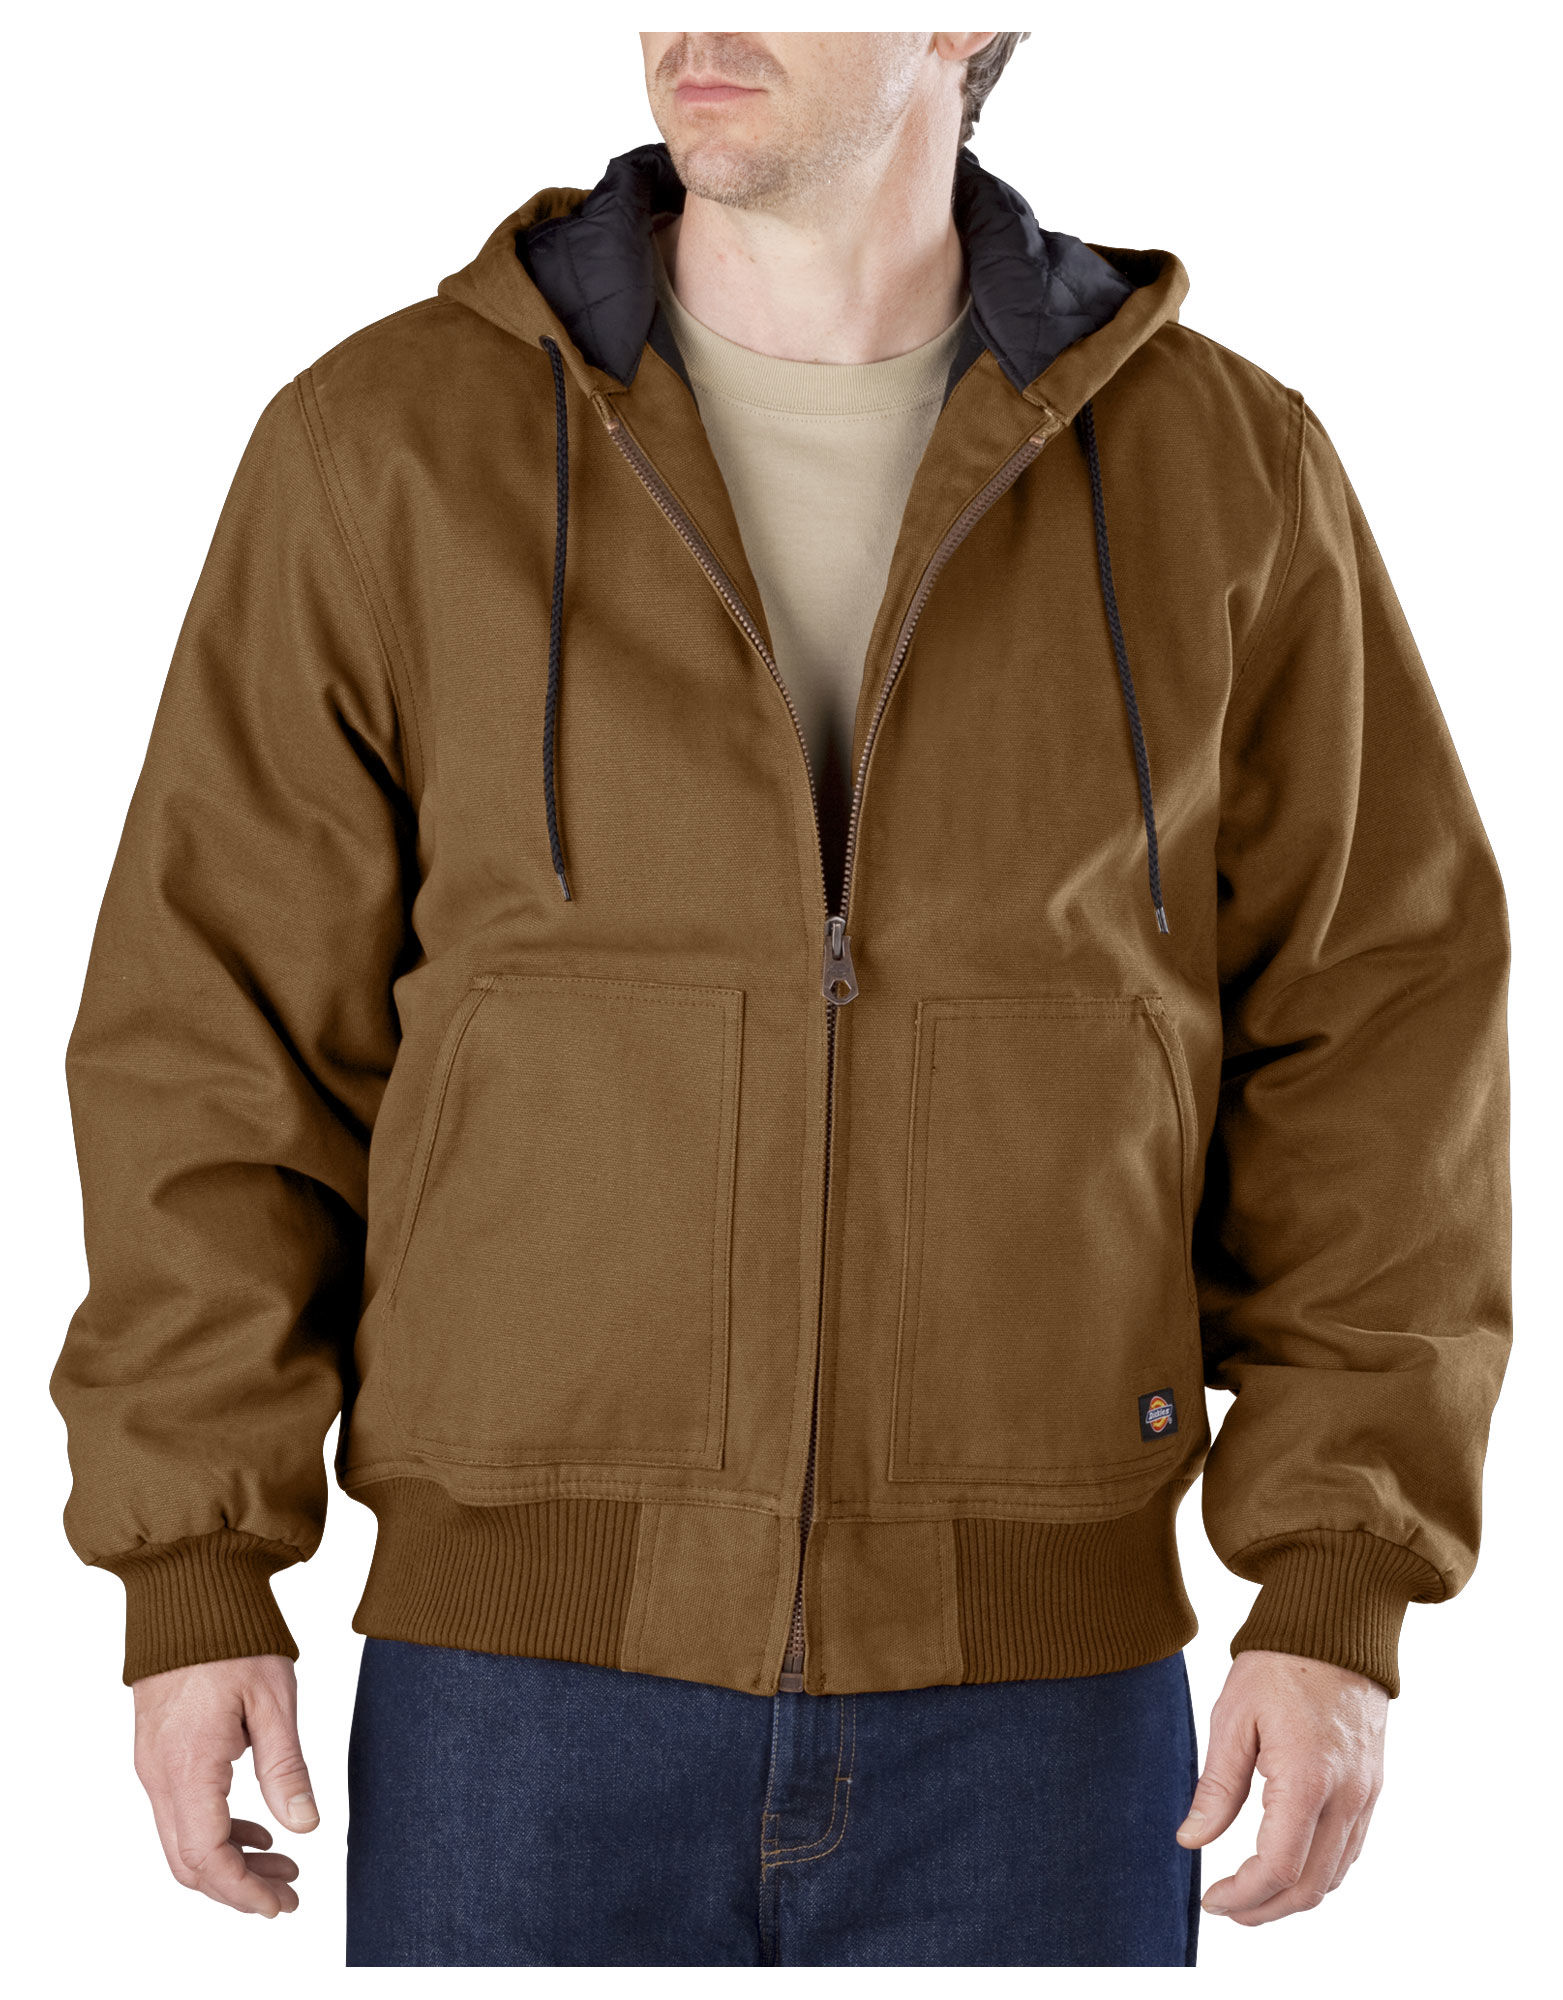 Dickies Mens Sanded Duck Hooded Jacket, Brown Duck - 2T - Walmart.com